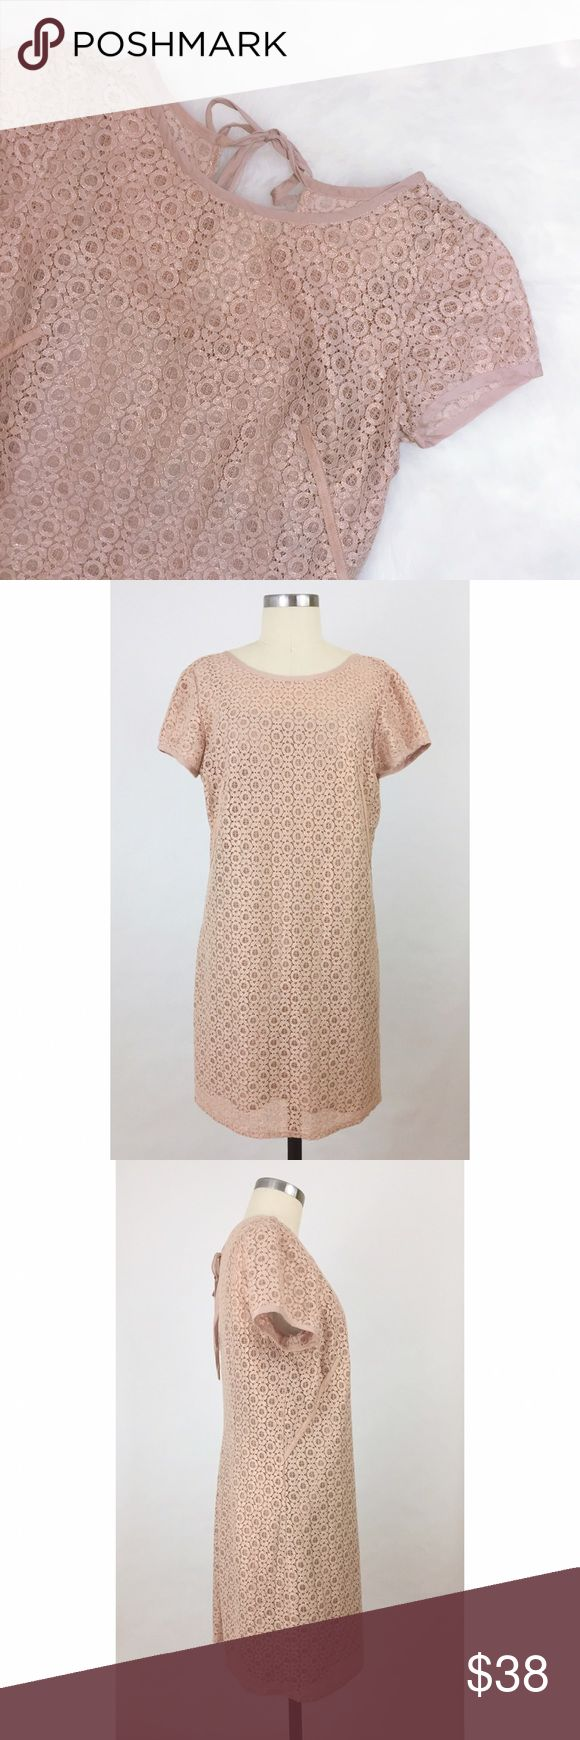 •LOFT• XO Pink Metallic Lace Dress This stunning lace dress in a light pink threaded with golden metallic is simply perfect for a night out! Pair with gold or nude flats and statement earrings to complete the look! Dress is gently worn; no signs of wear. LOFT Dresses Mini